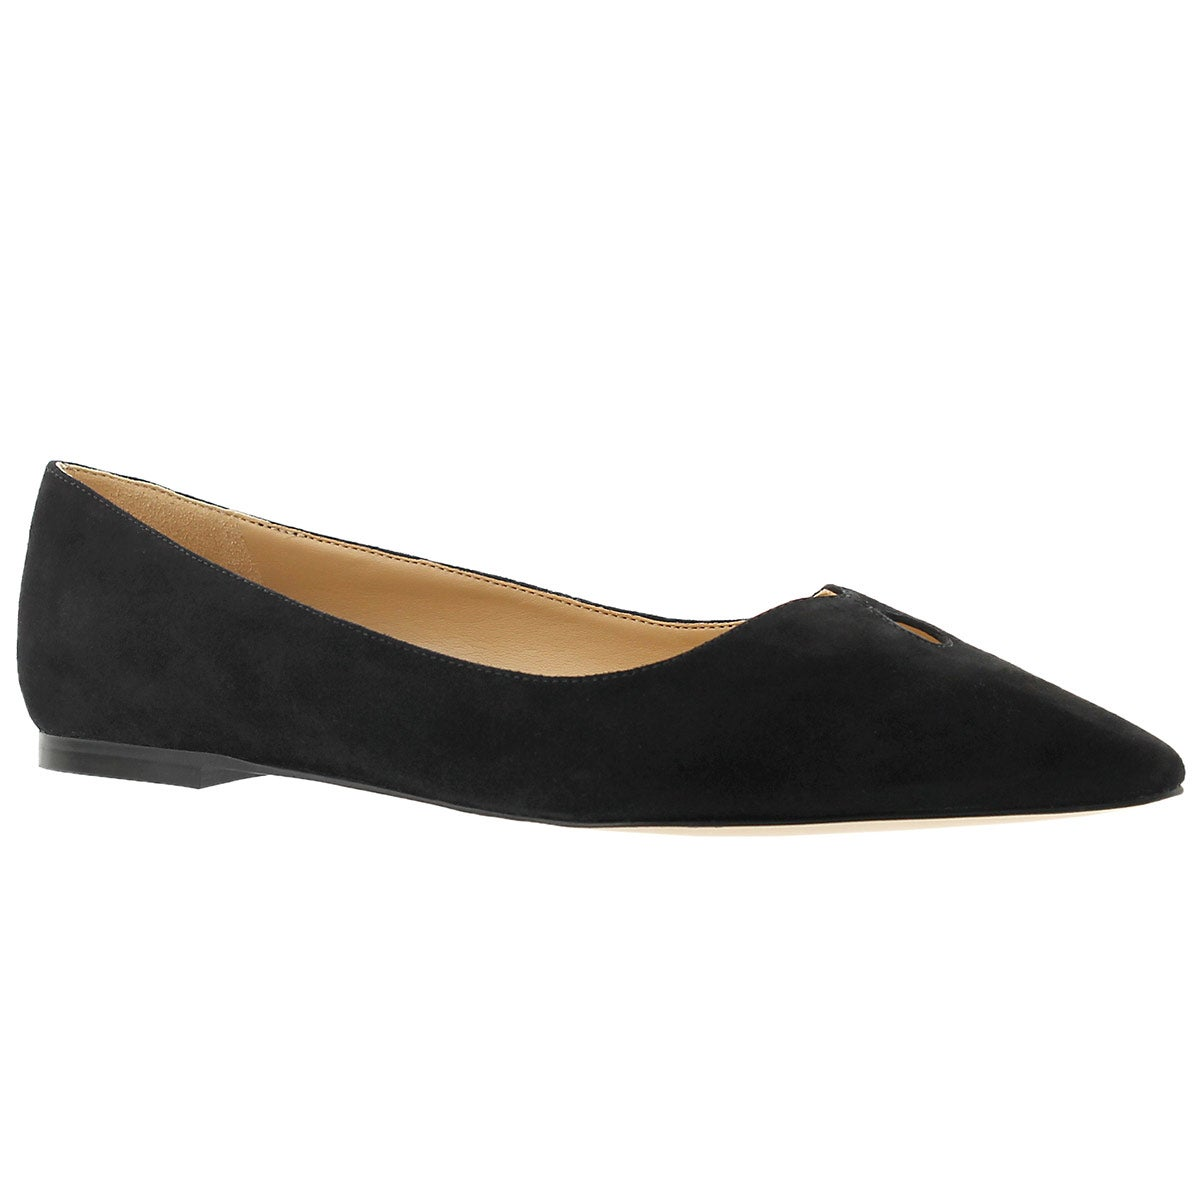 Lds Ruby black suede dress flat